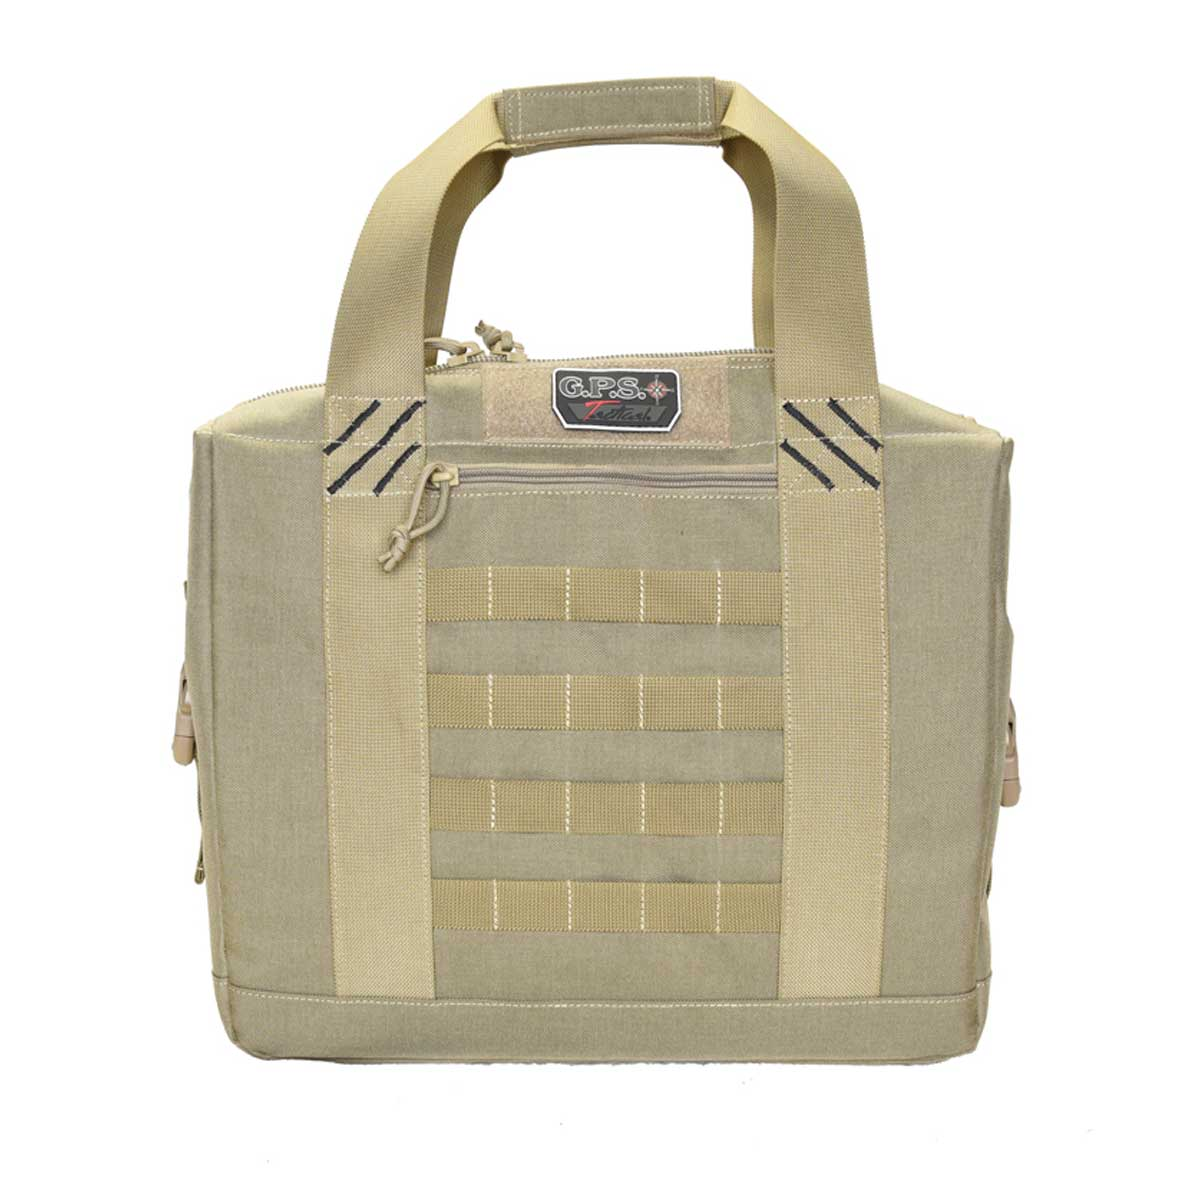 G.OUTDOORS TACTICAL SOFTSIDE COOLER STORAGE CASE